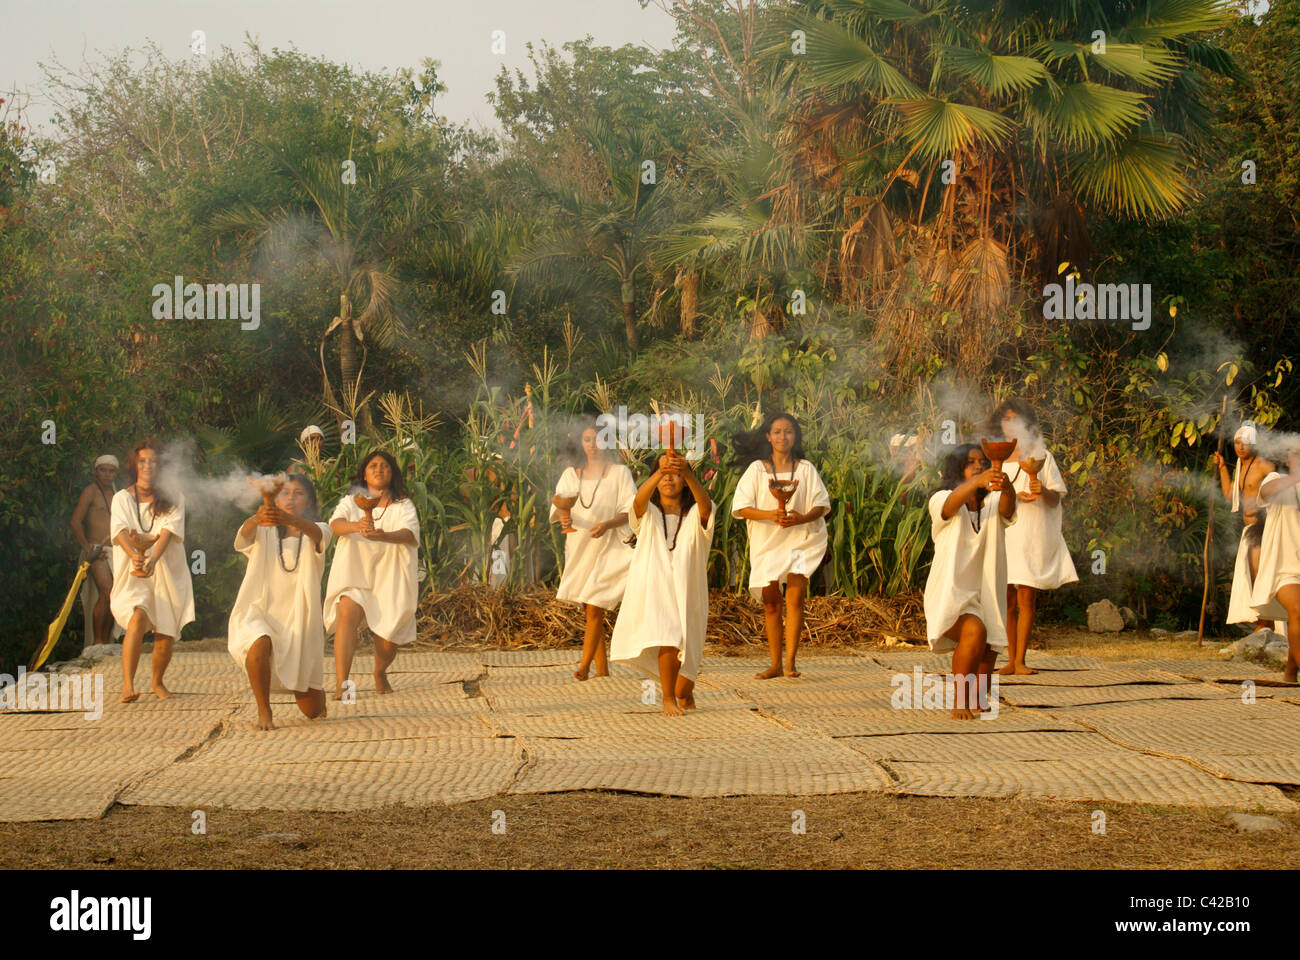 Dancers performing purification ritual at the Sacred Mayan Journey 2011 event, Riviera Maya,  Xcaret Park, Quintana - Stock Image